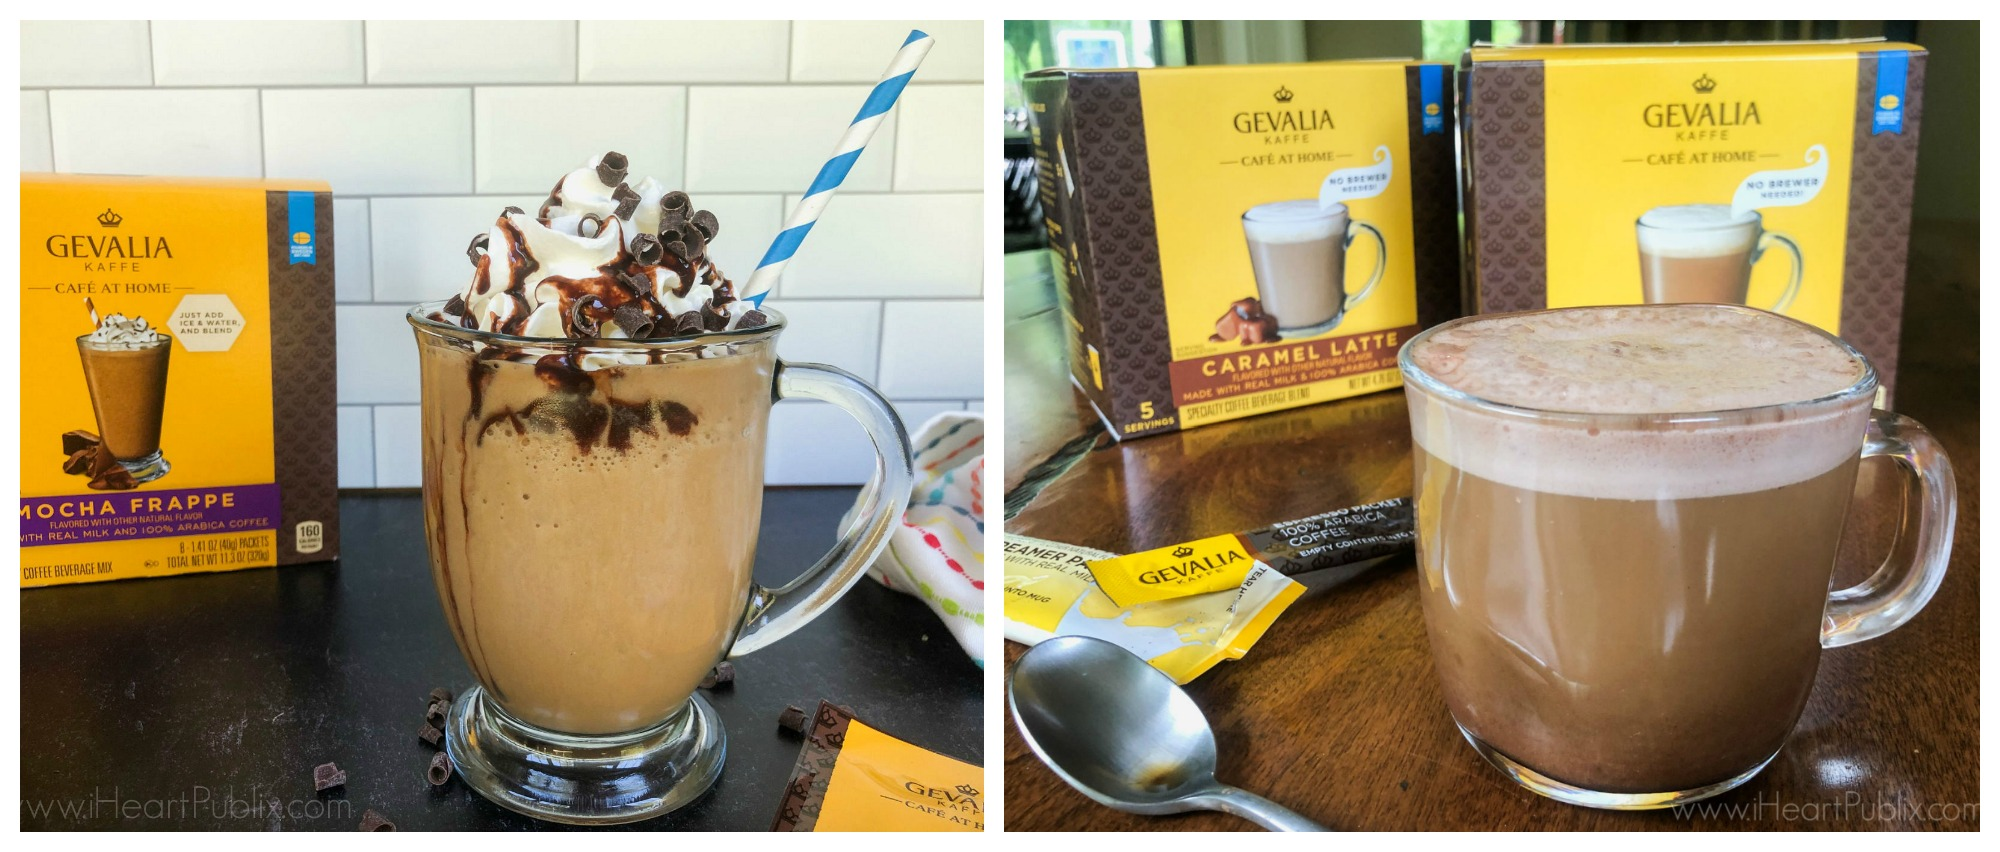 Gevalia Café at Home And Gevalia Frappe Products Are BOGO At Publix - Great Taste No Brewer Required! on I Heart Publix 3